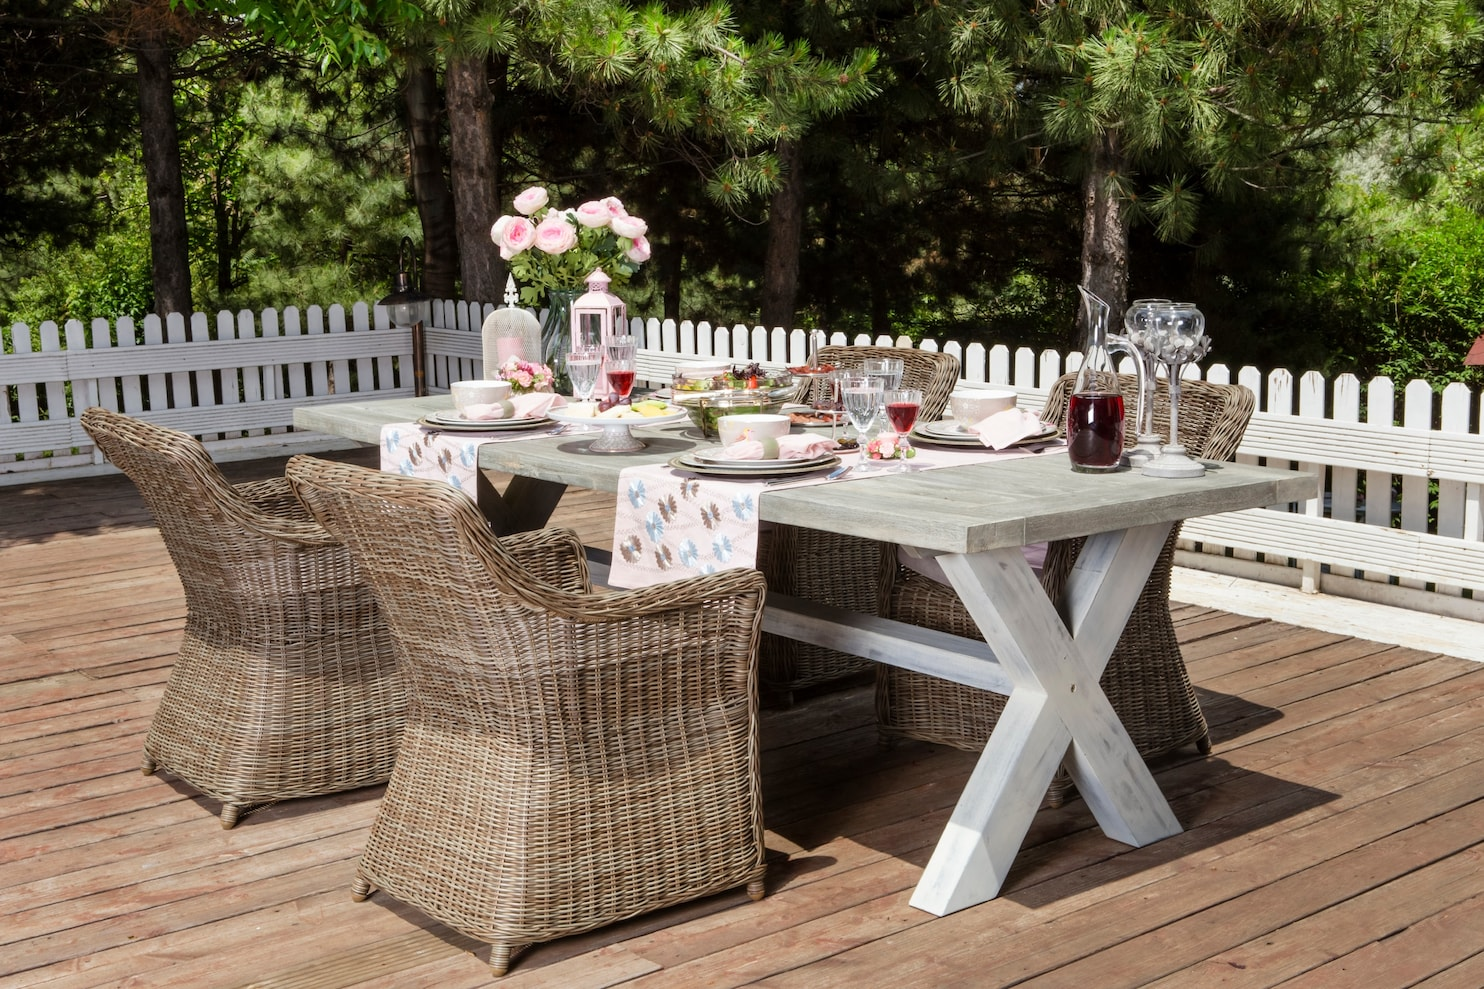 Outdoor Furniture Guide Fabrics And Materials